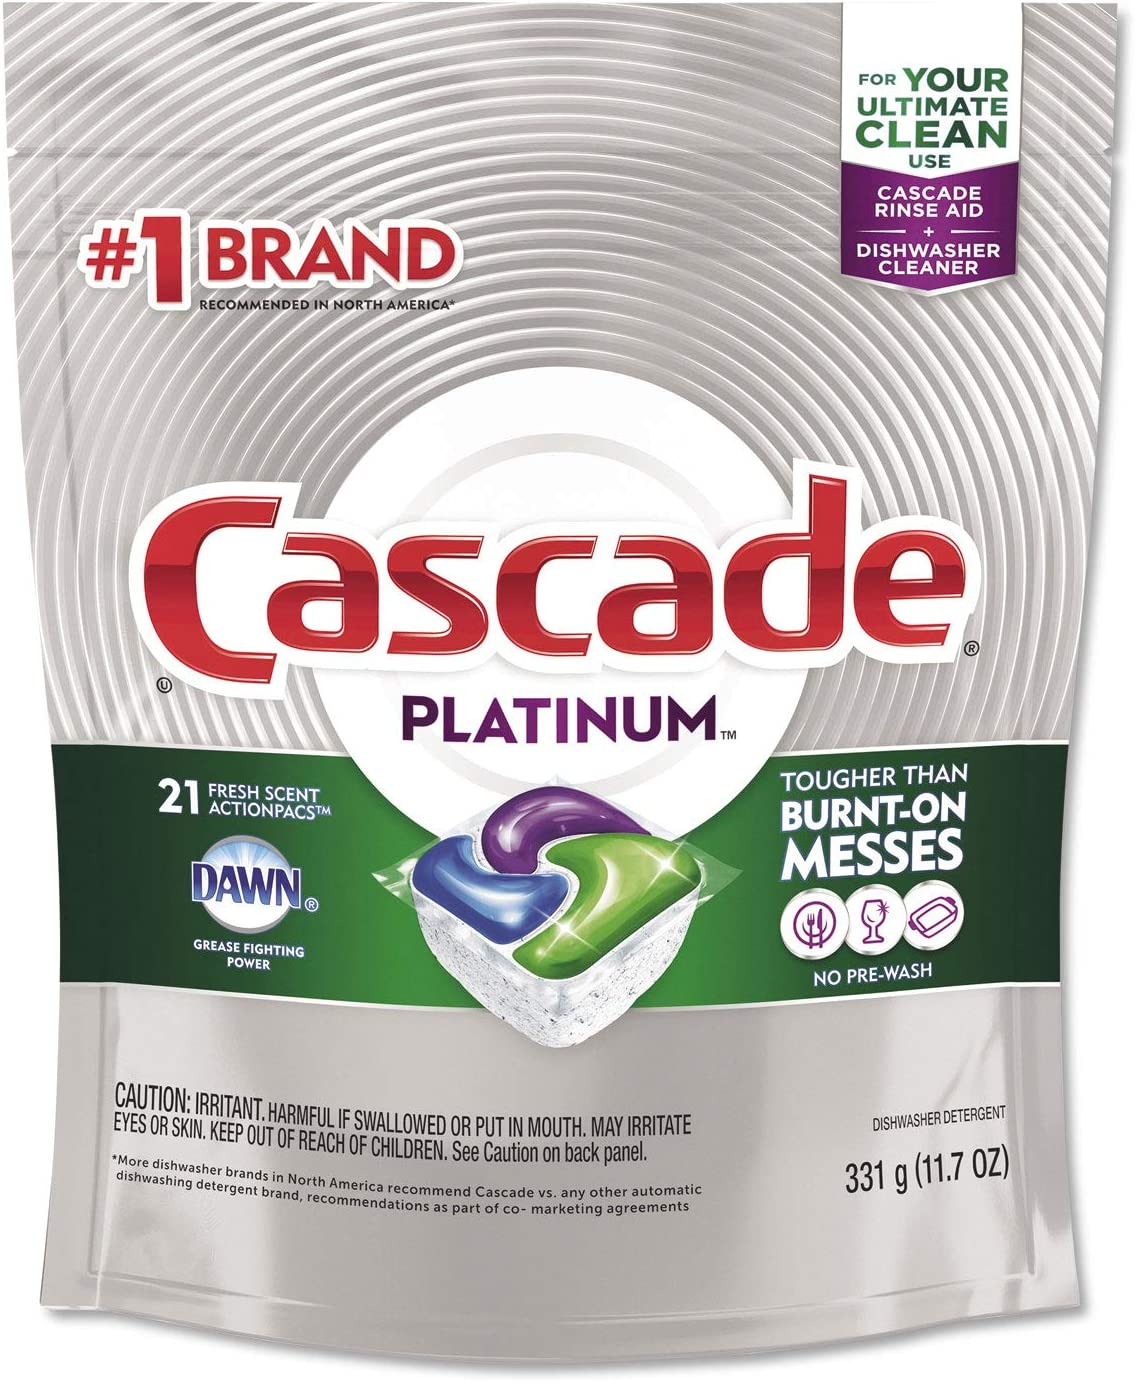 Cascade Platinum ActionPacs Dishwasher Detergent, Fresh Scent, Pack of 21 Pods